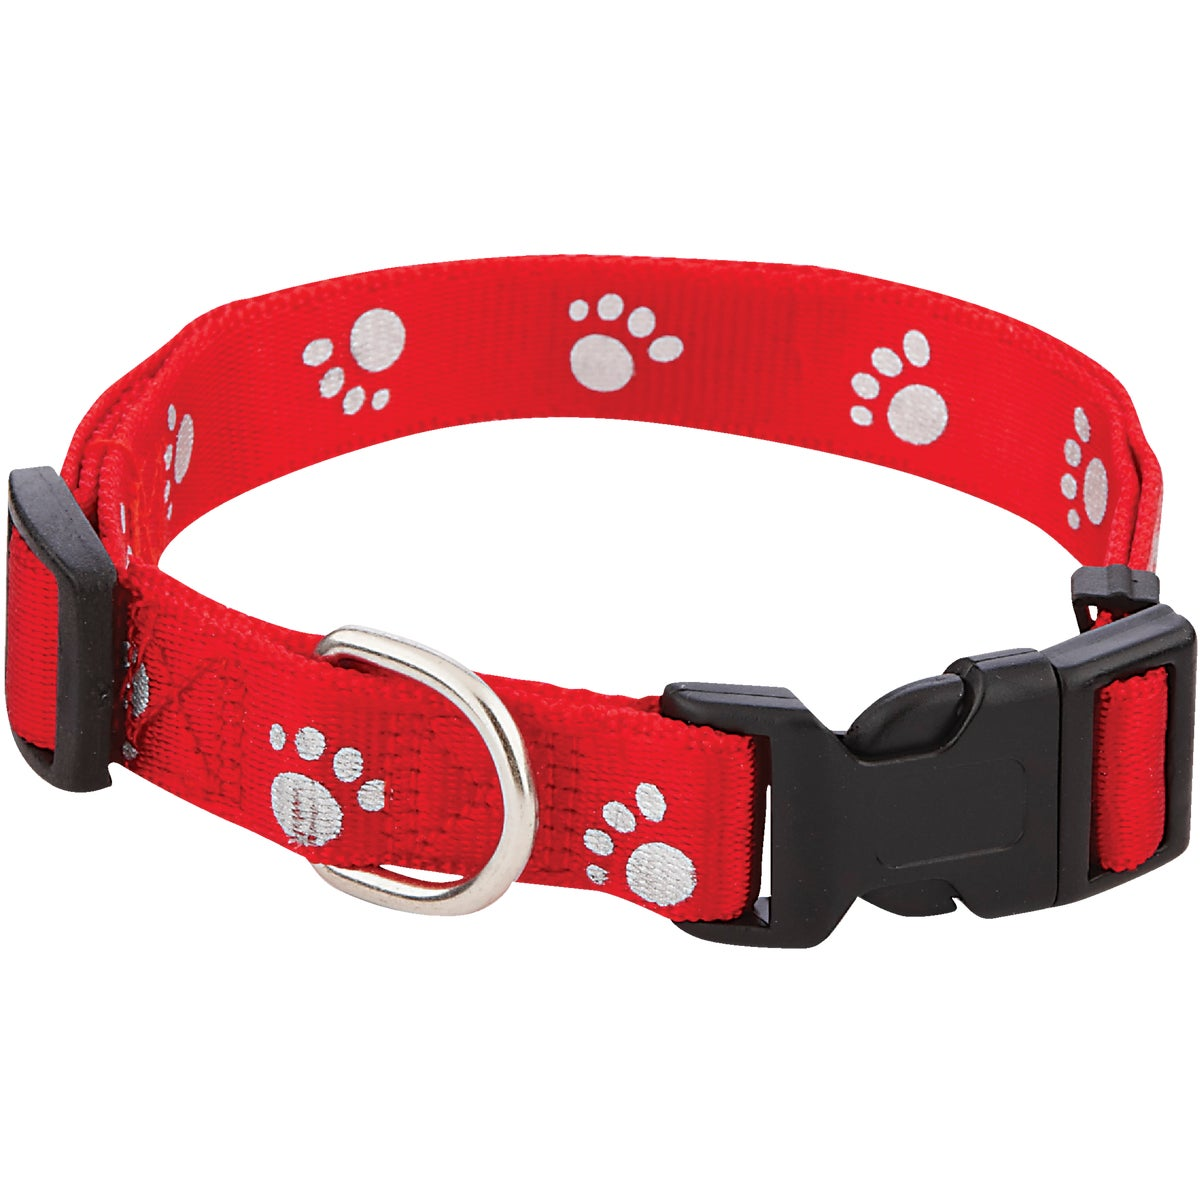 3/4X14-20 PAW REF COLLAR - 39242 by Westminster Pet